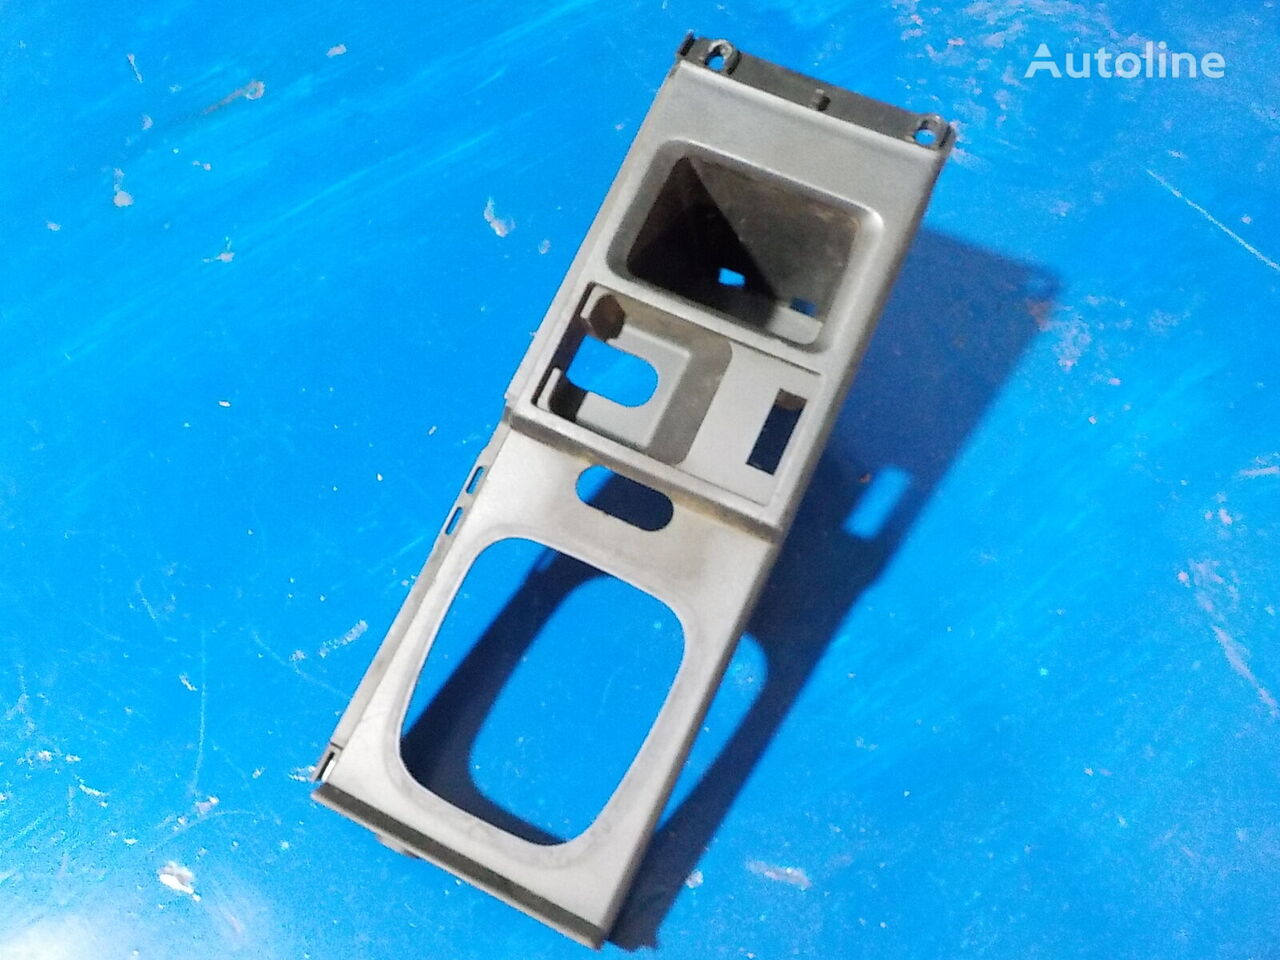 Panel Scania front fascia for truck